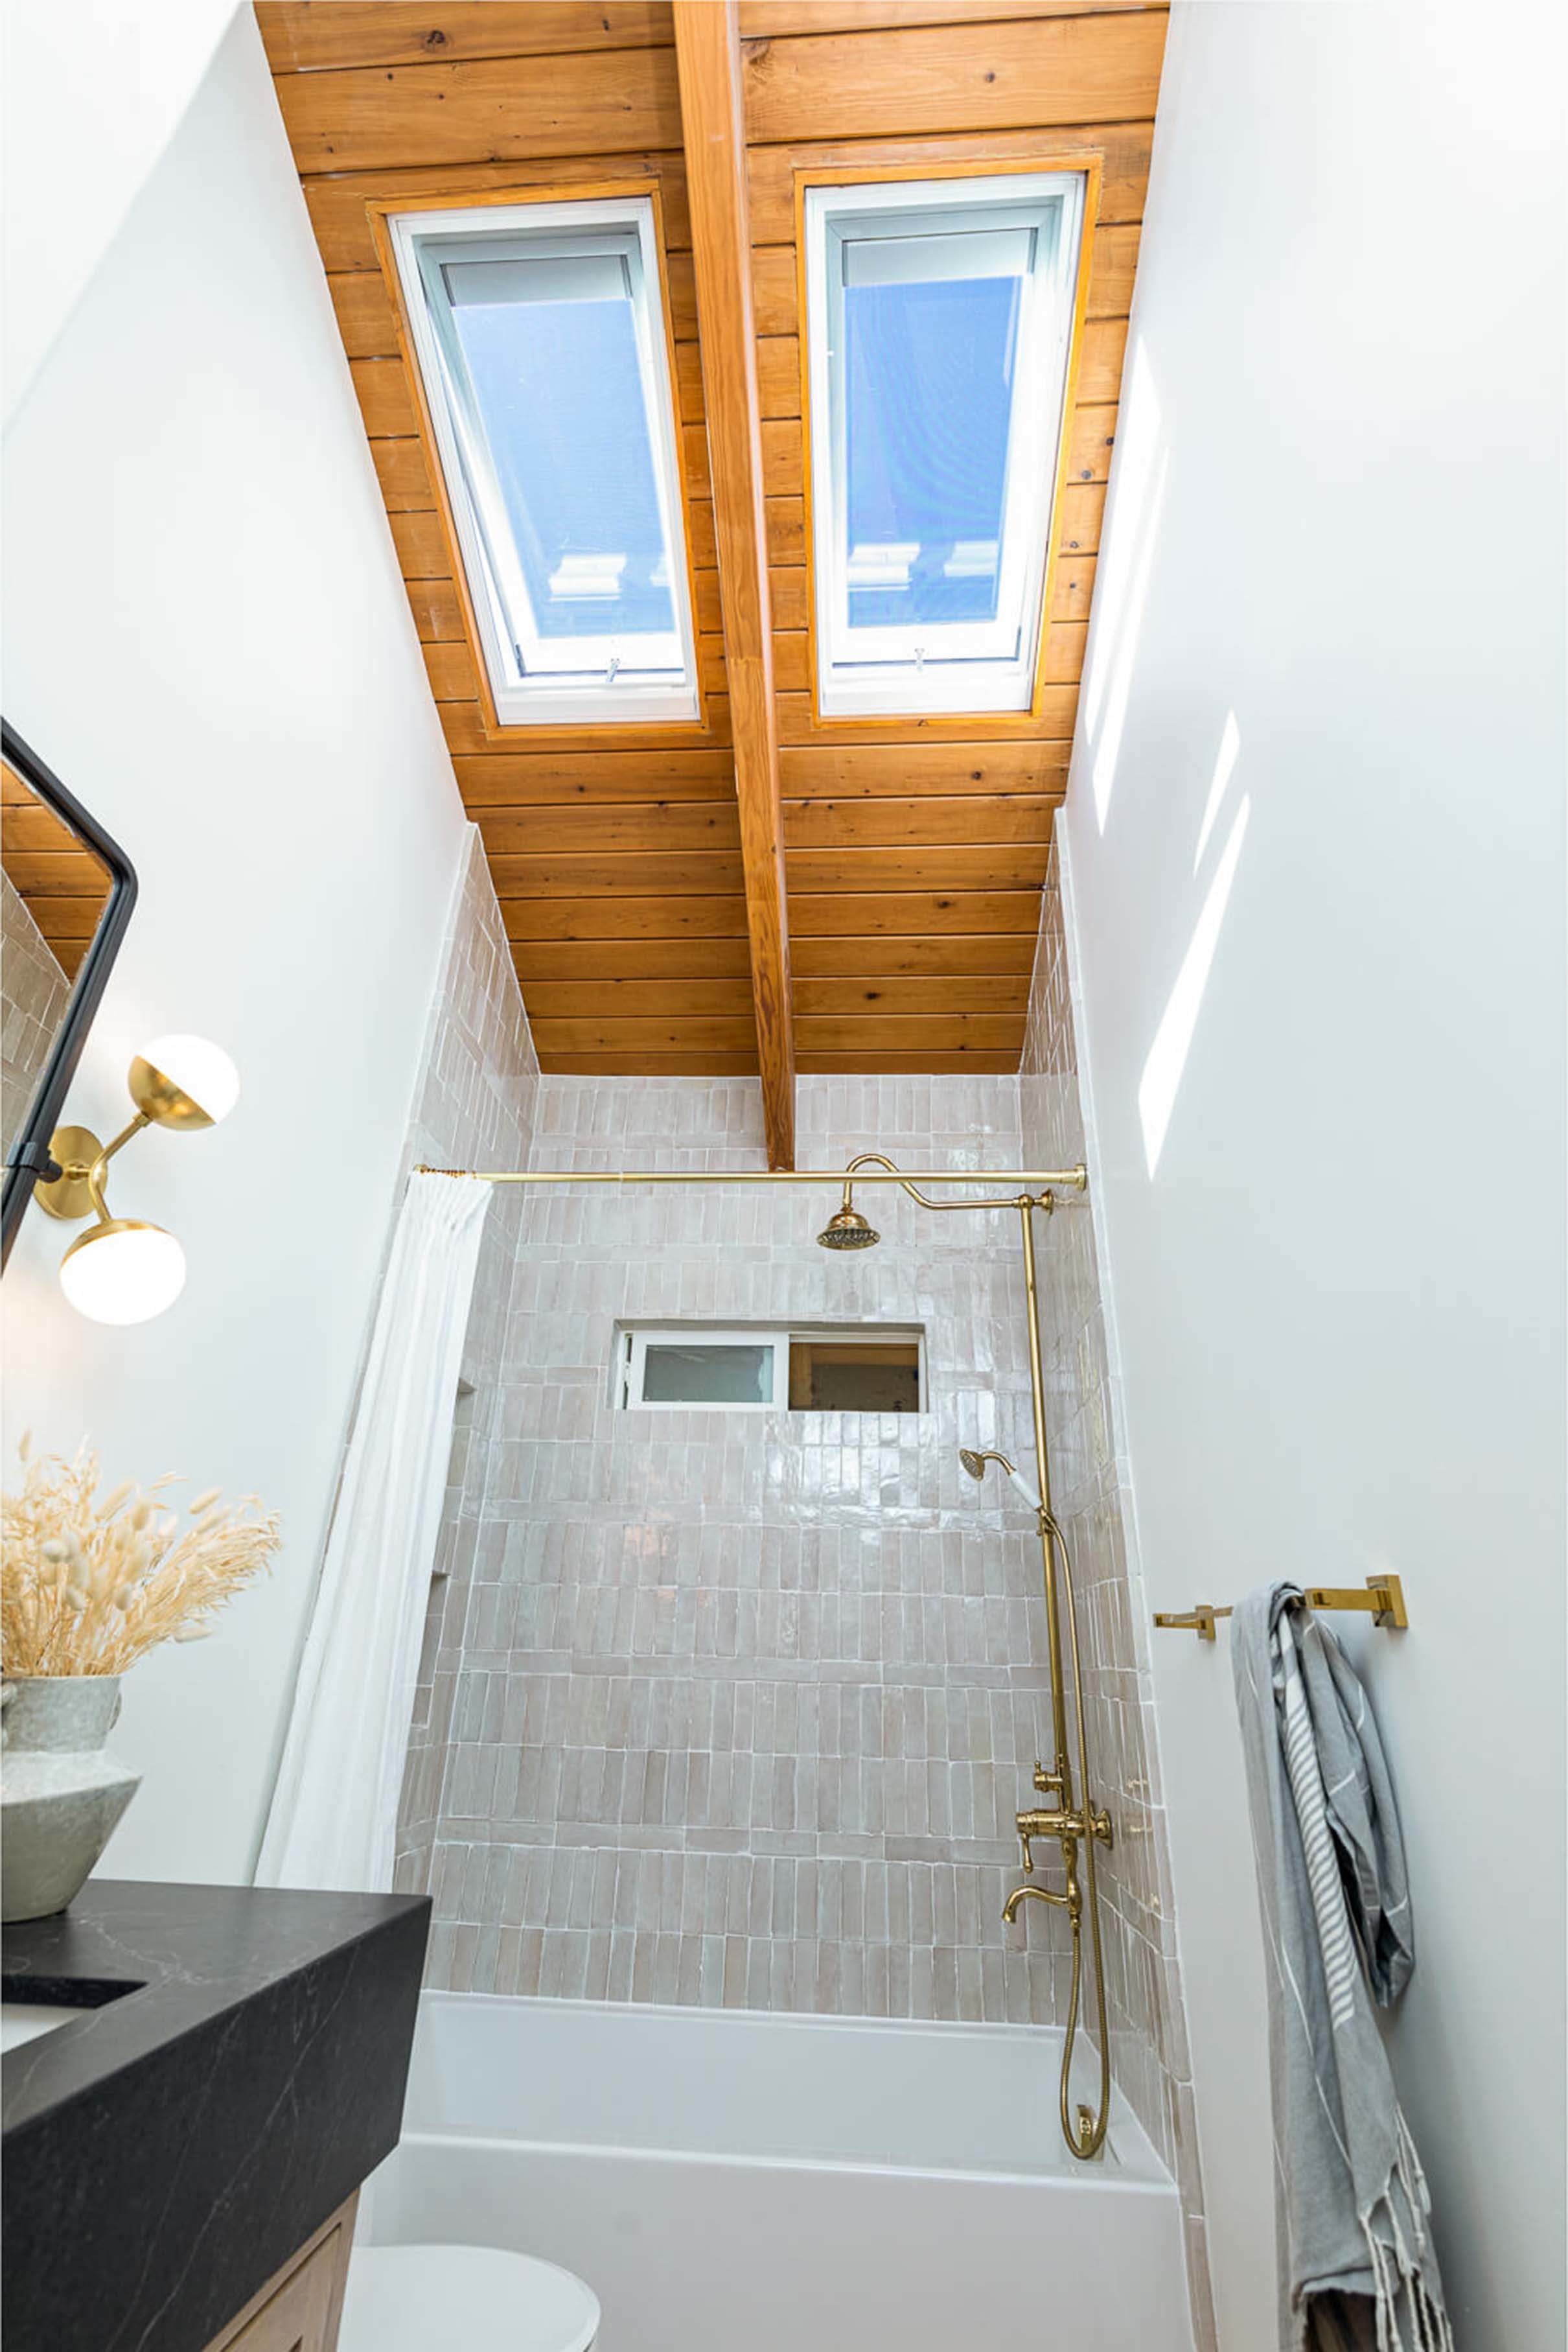 Small bathroom two skylights wooden ceiling